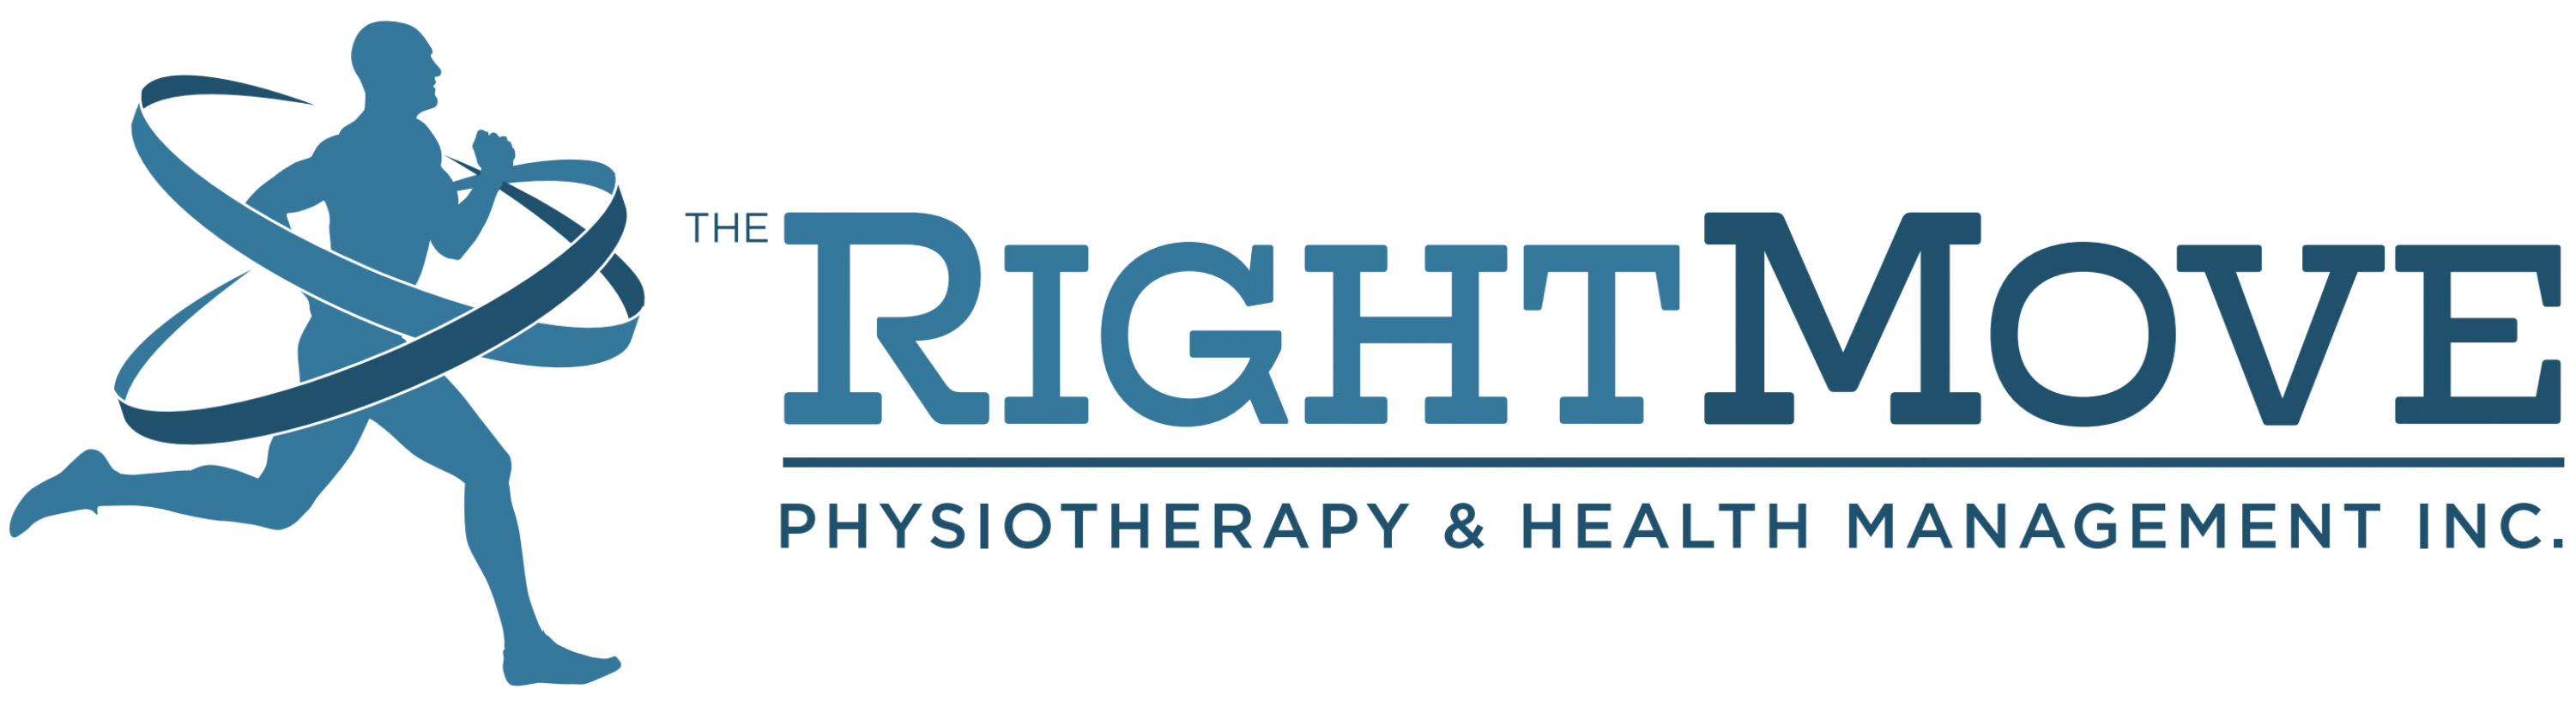 Right Move Physiotherapy